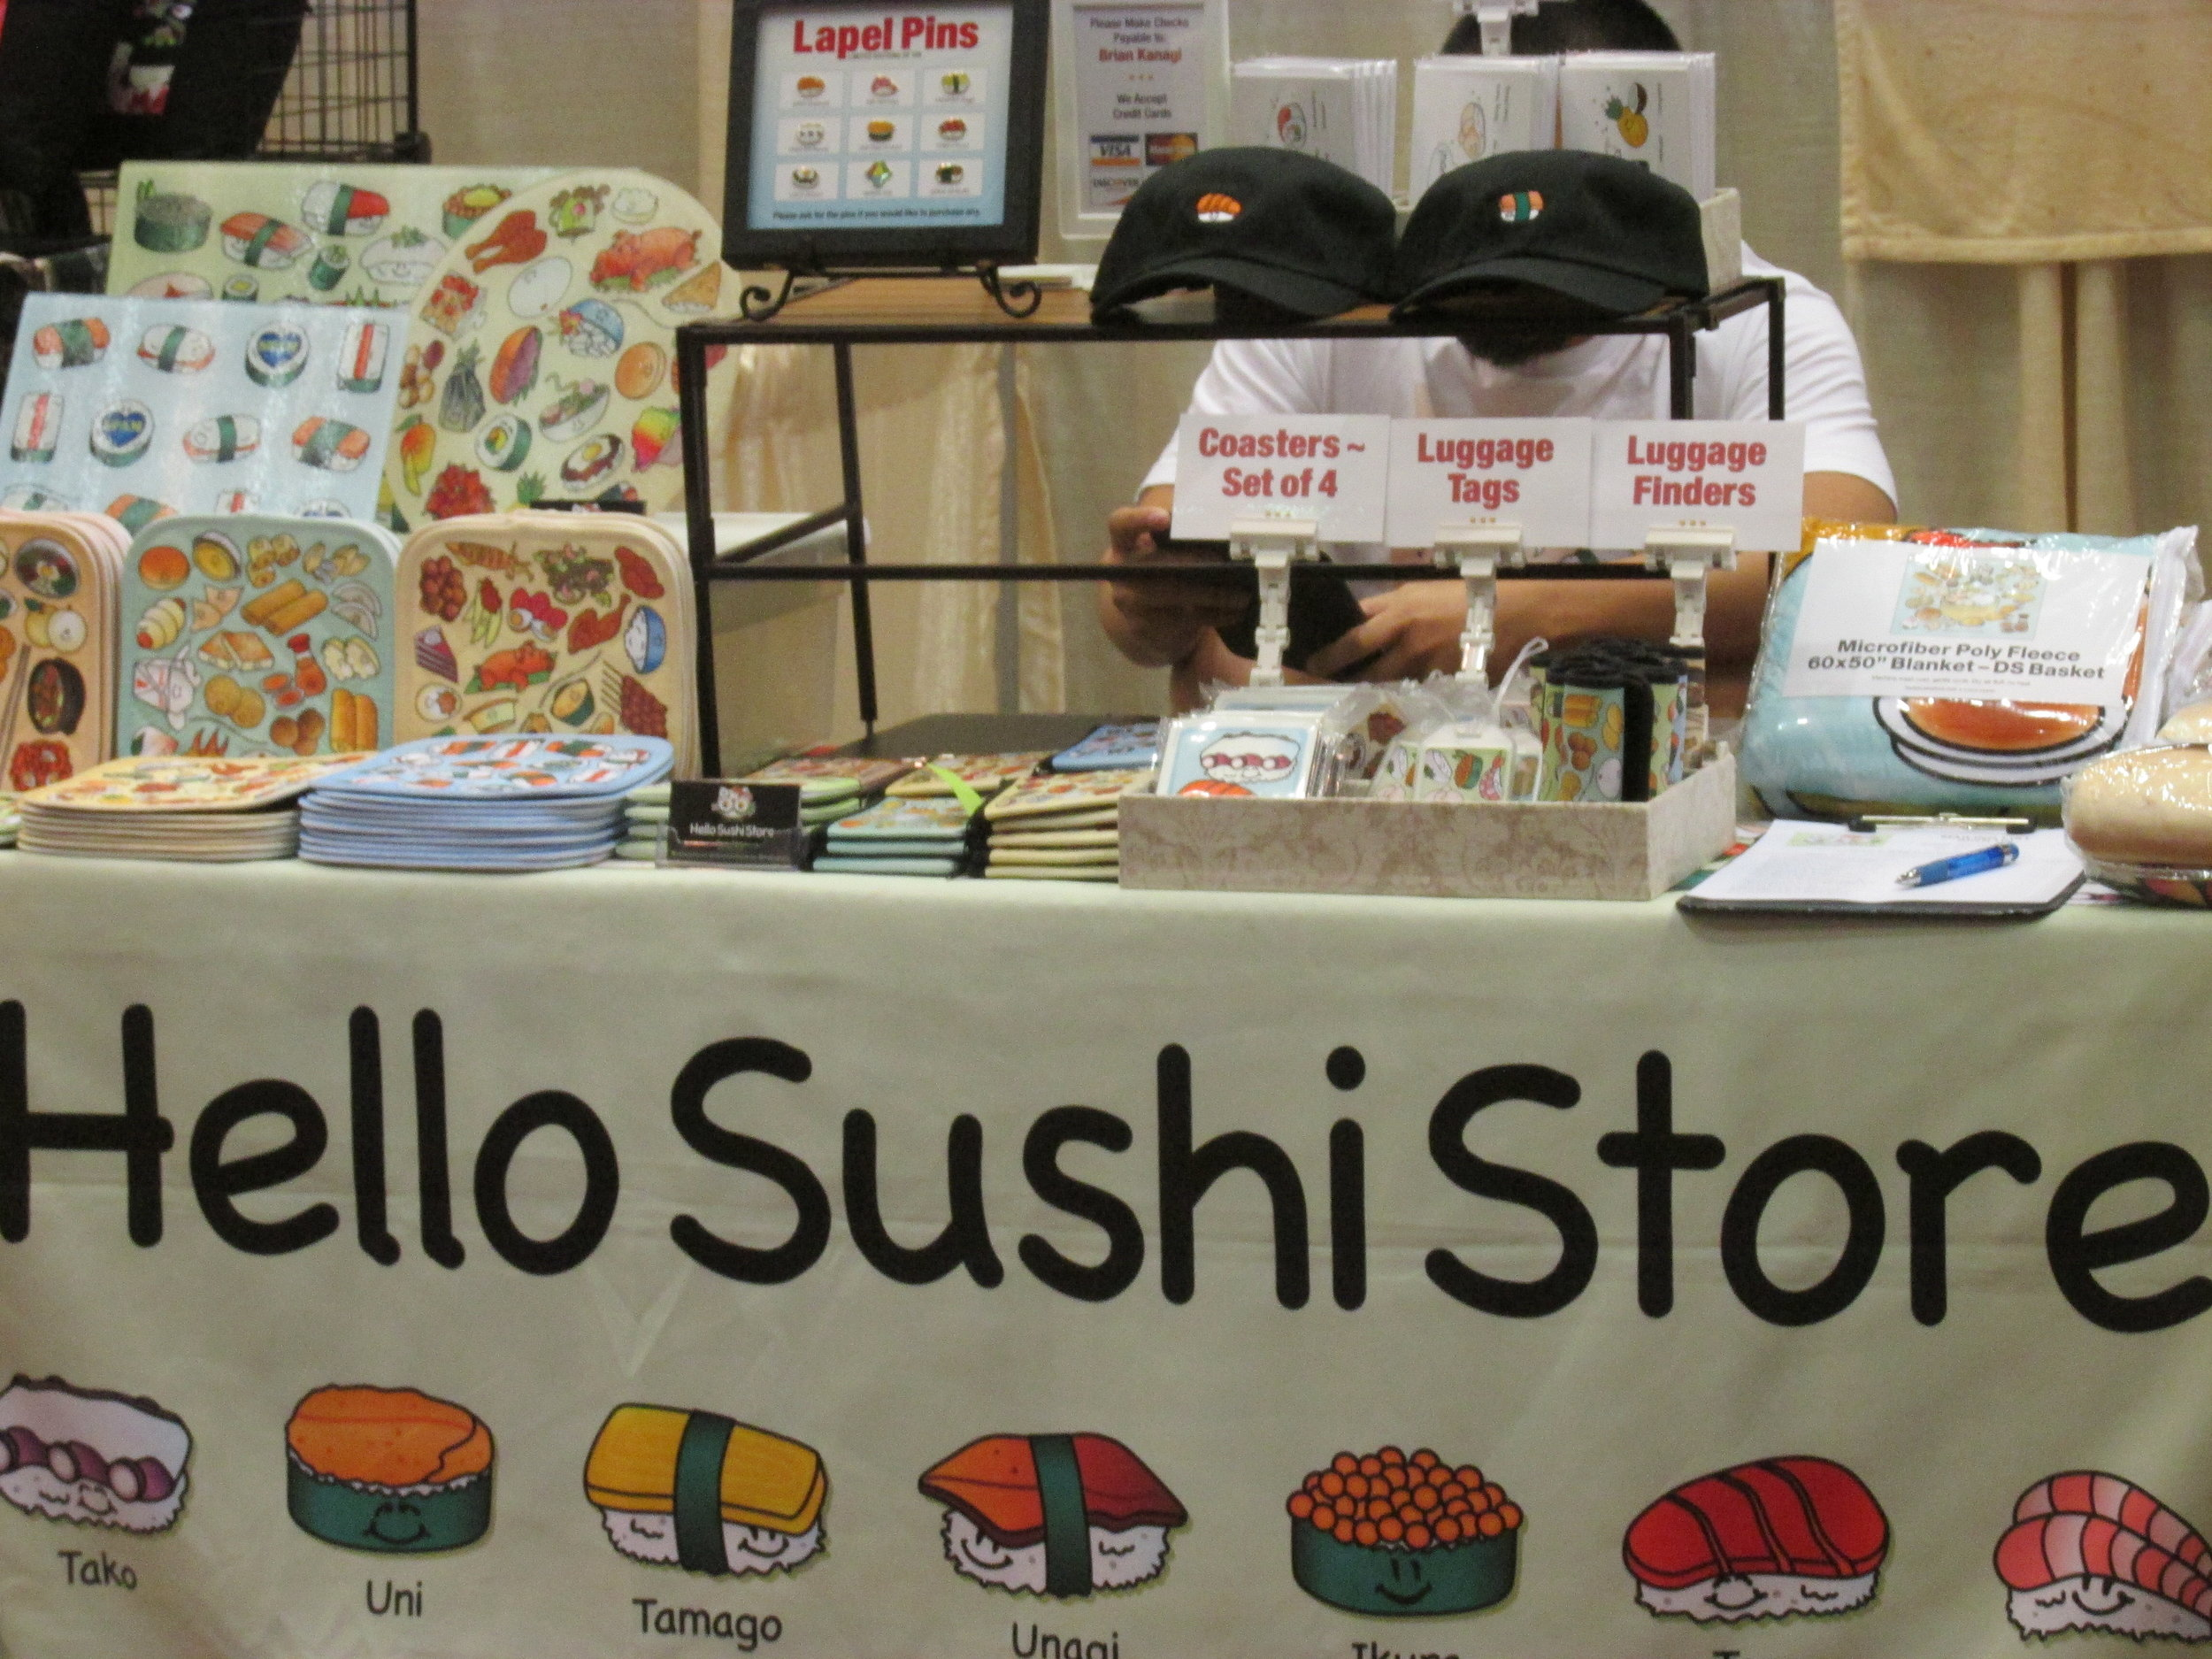 The booth in front of us was Hello Sushi Store.